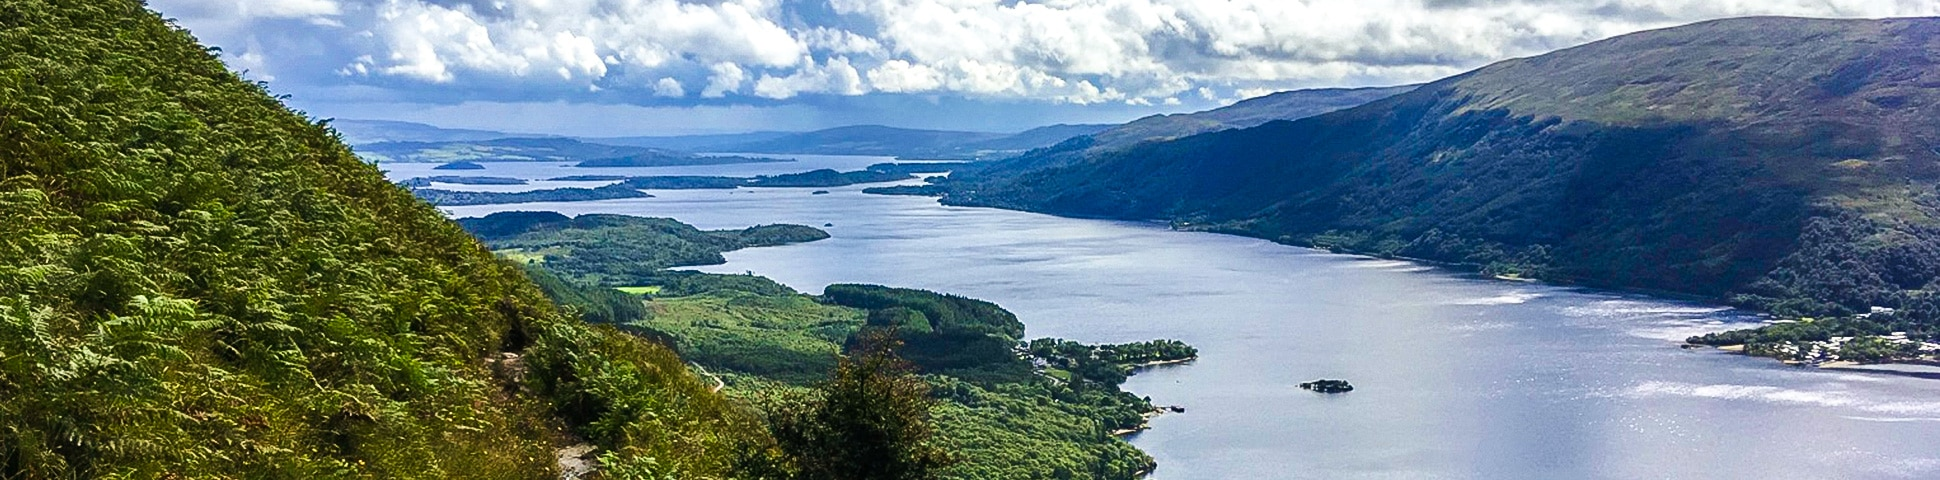 Loch Lomond Hiking views